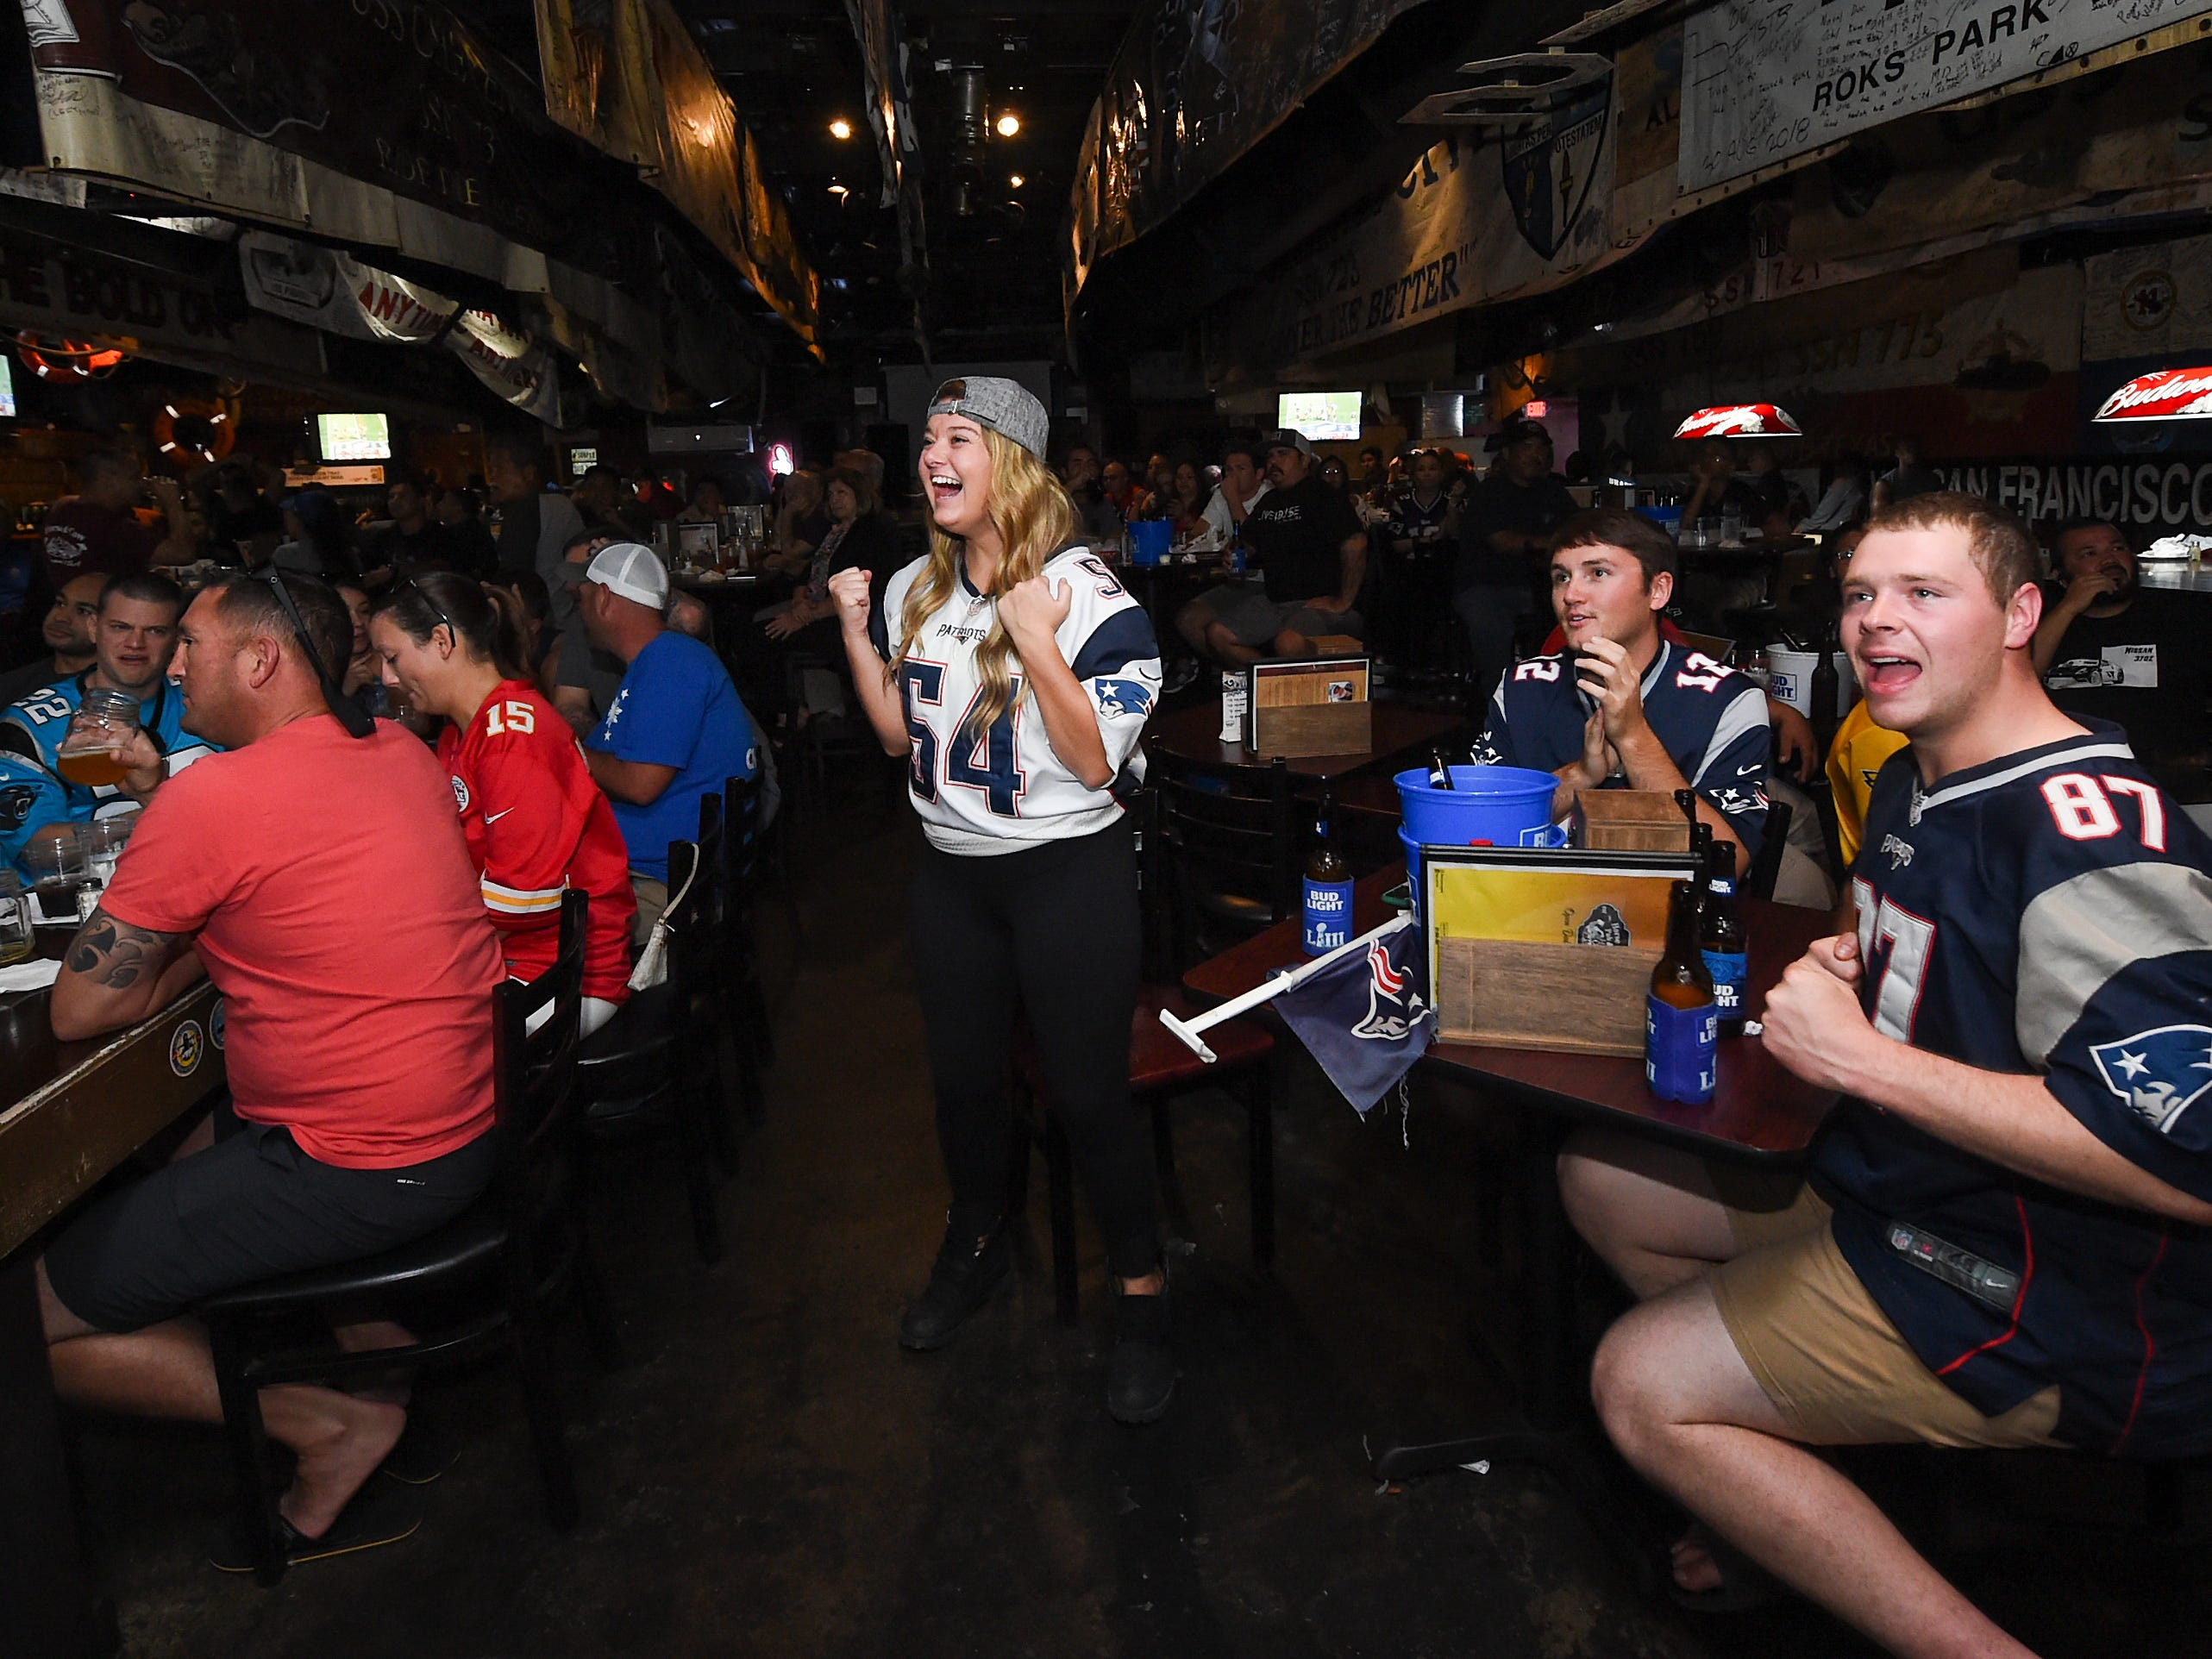 New England Patriots fan Jackie Walsh, standing, celebrates her team's Superbowl 53 run during a Horse and Cow party in Tamuning, Feb. 4, 2019.